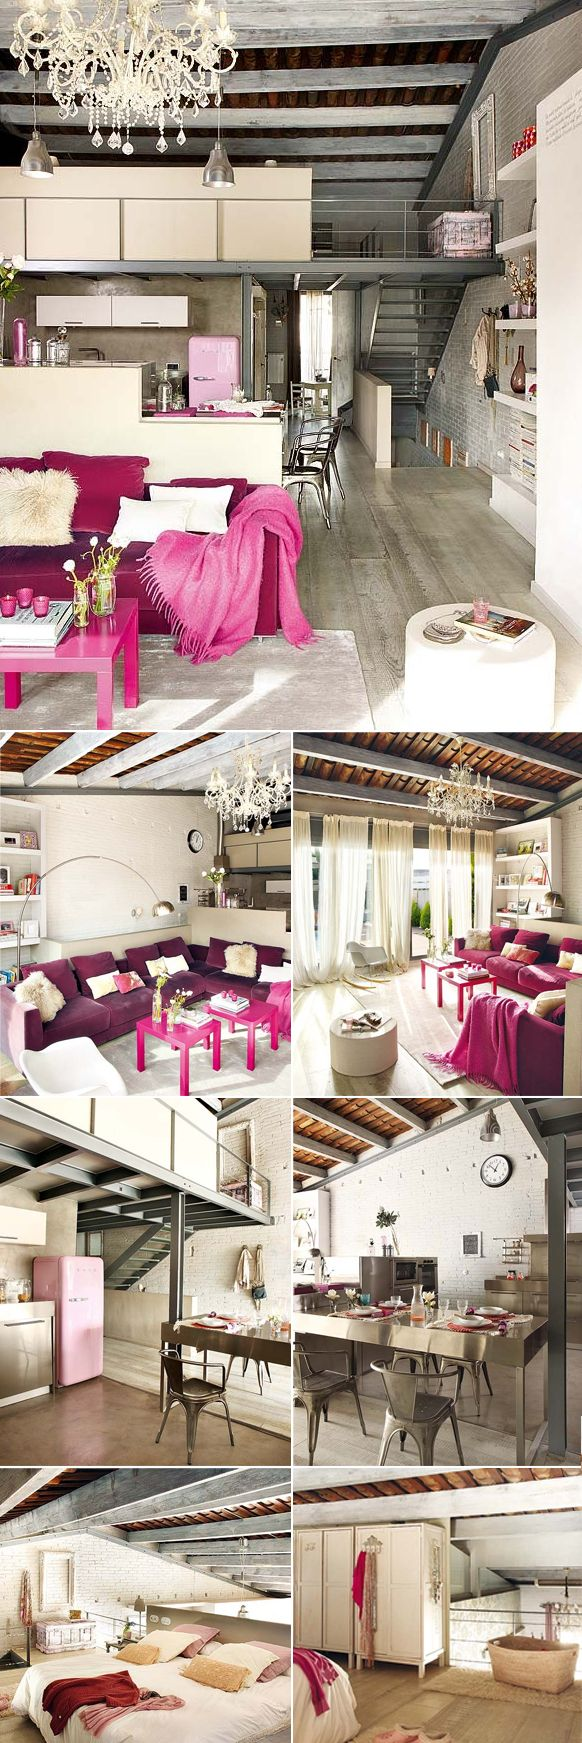 Inspiration for Rhea's room. I think that I will do her room in every shade of pink/purple.